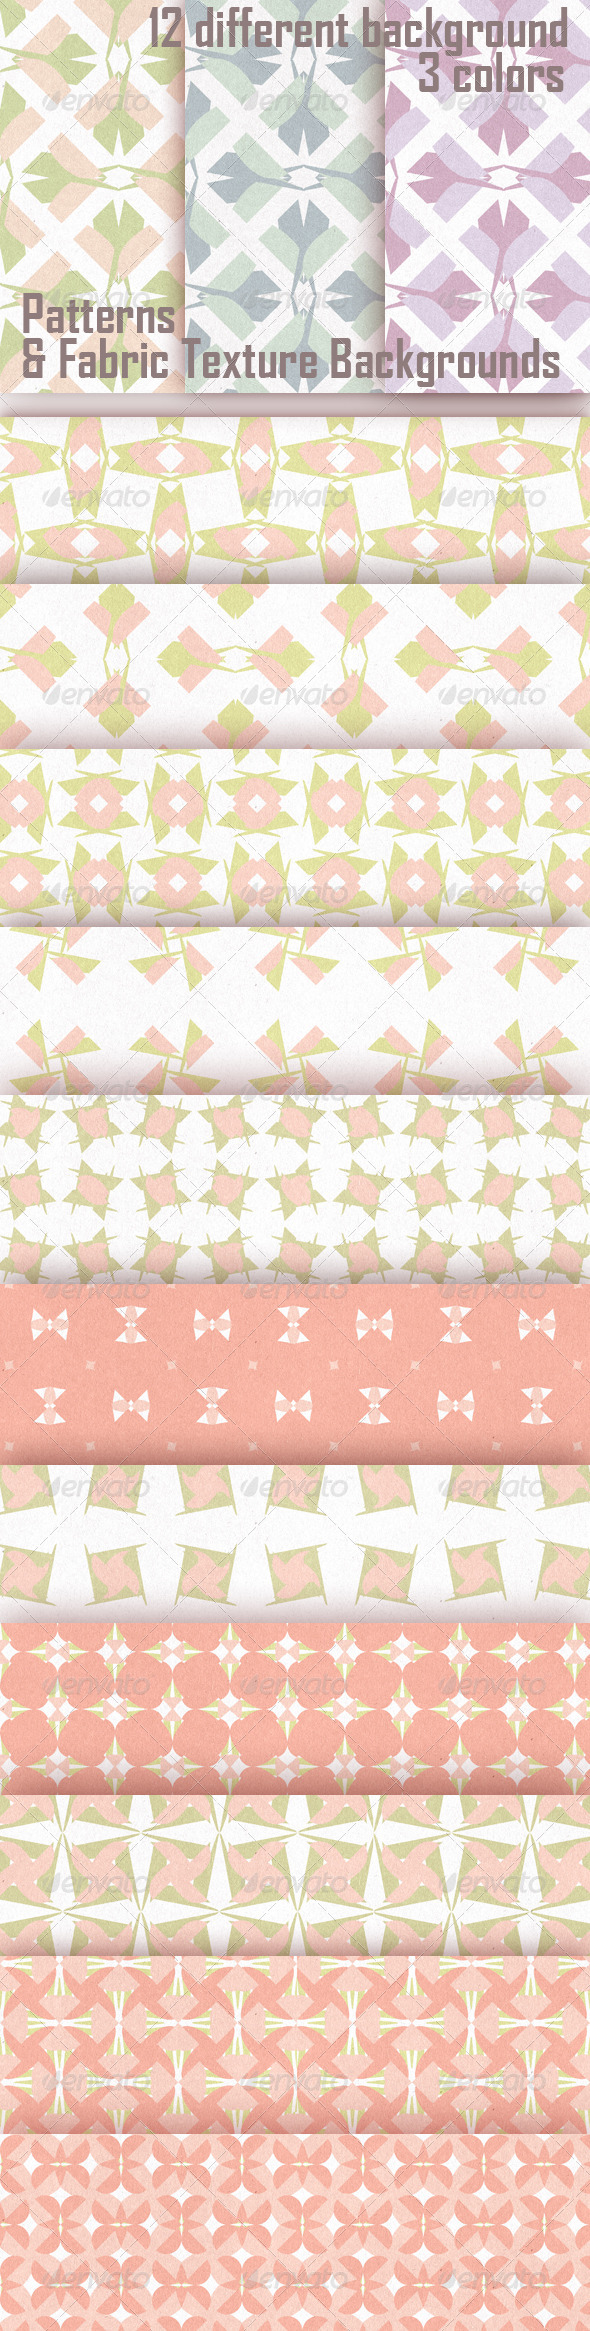 GraphicRiver Patterns & Fabric Texture Backgrounds 4850942